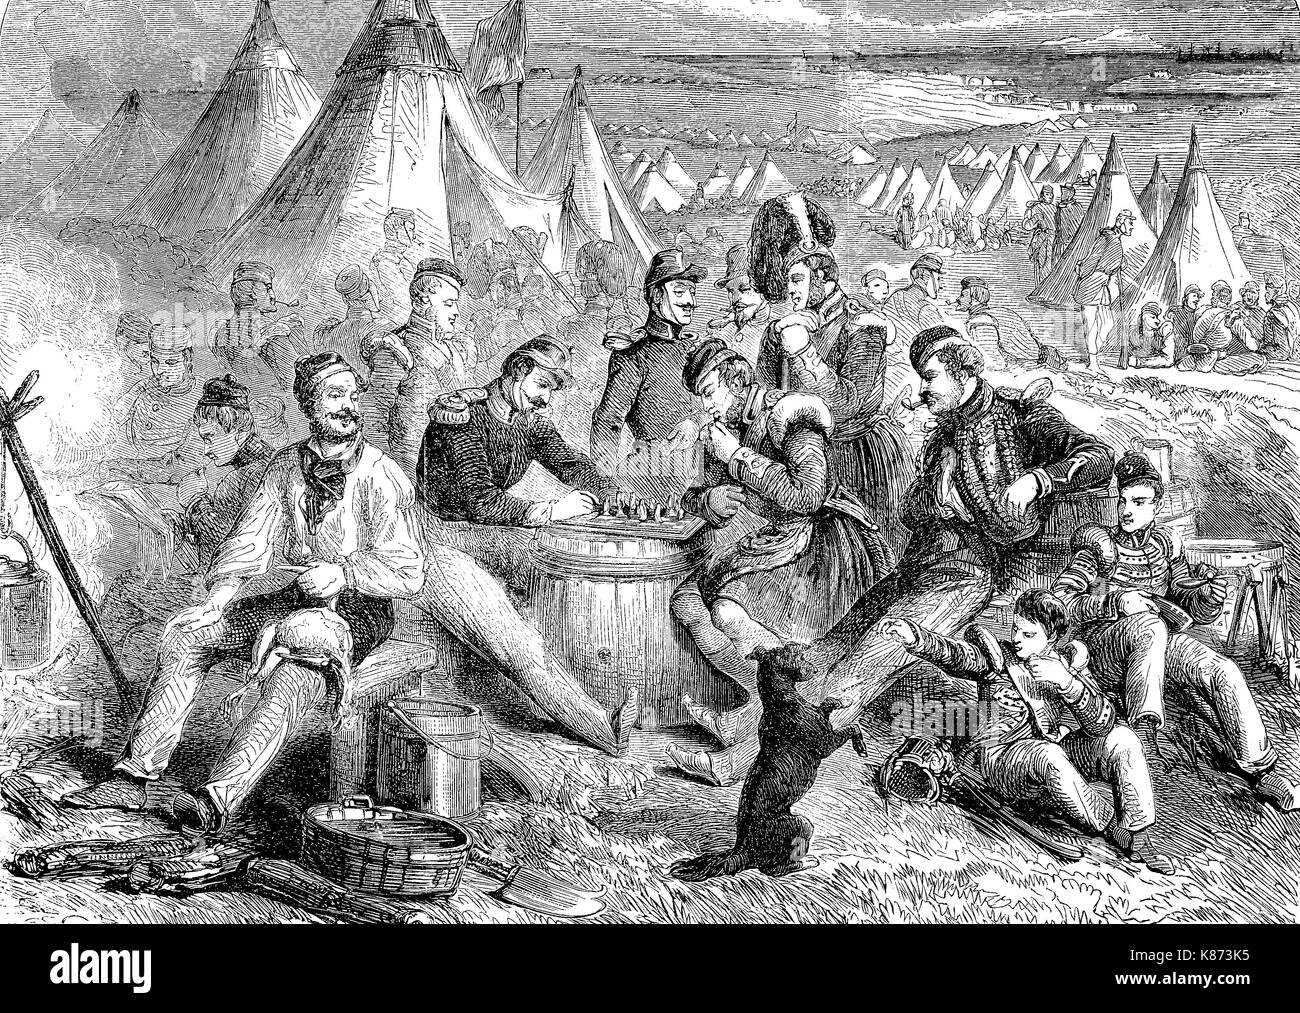 Crimean War 1853 - 1856, pastime and entertainment in the English camp at the Crimea, Digital improved reproduction - Stock Image